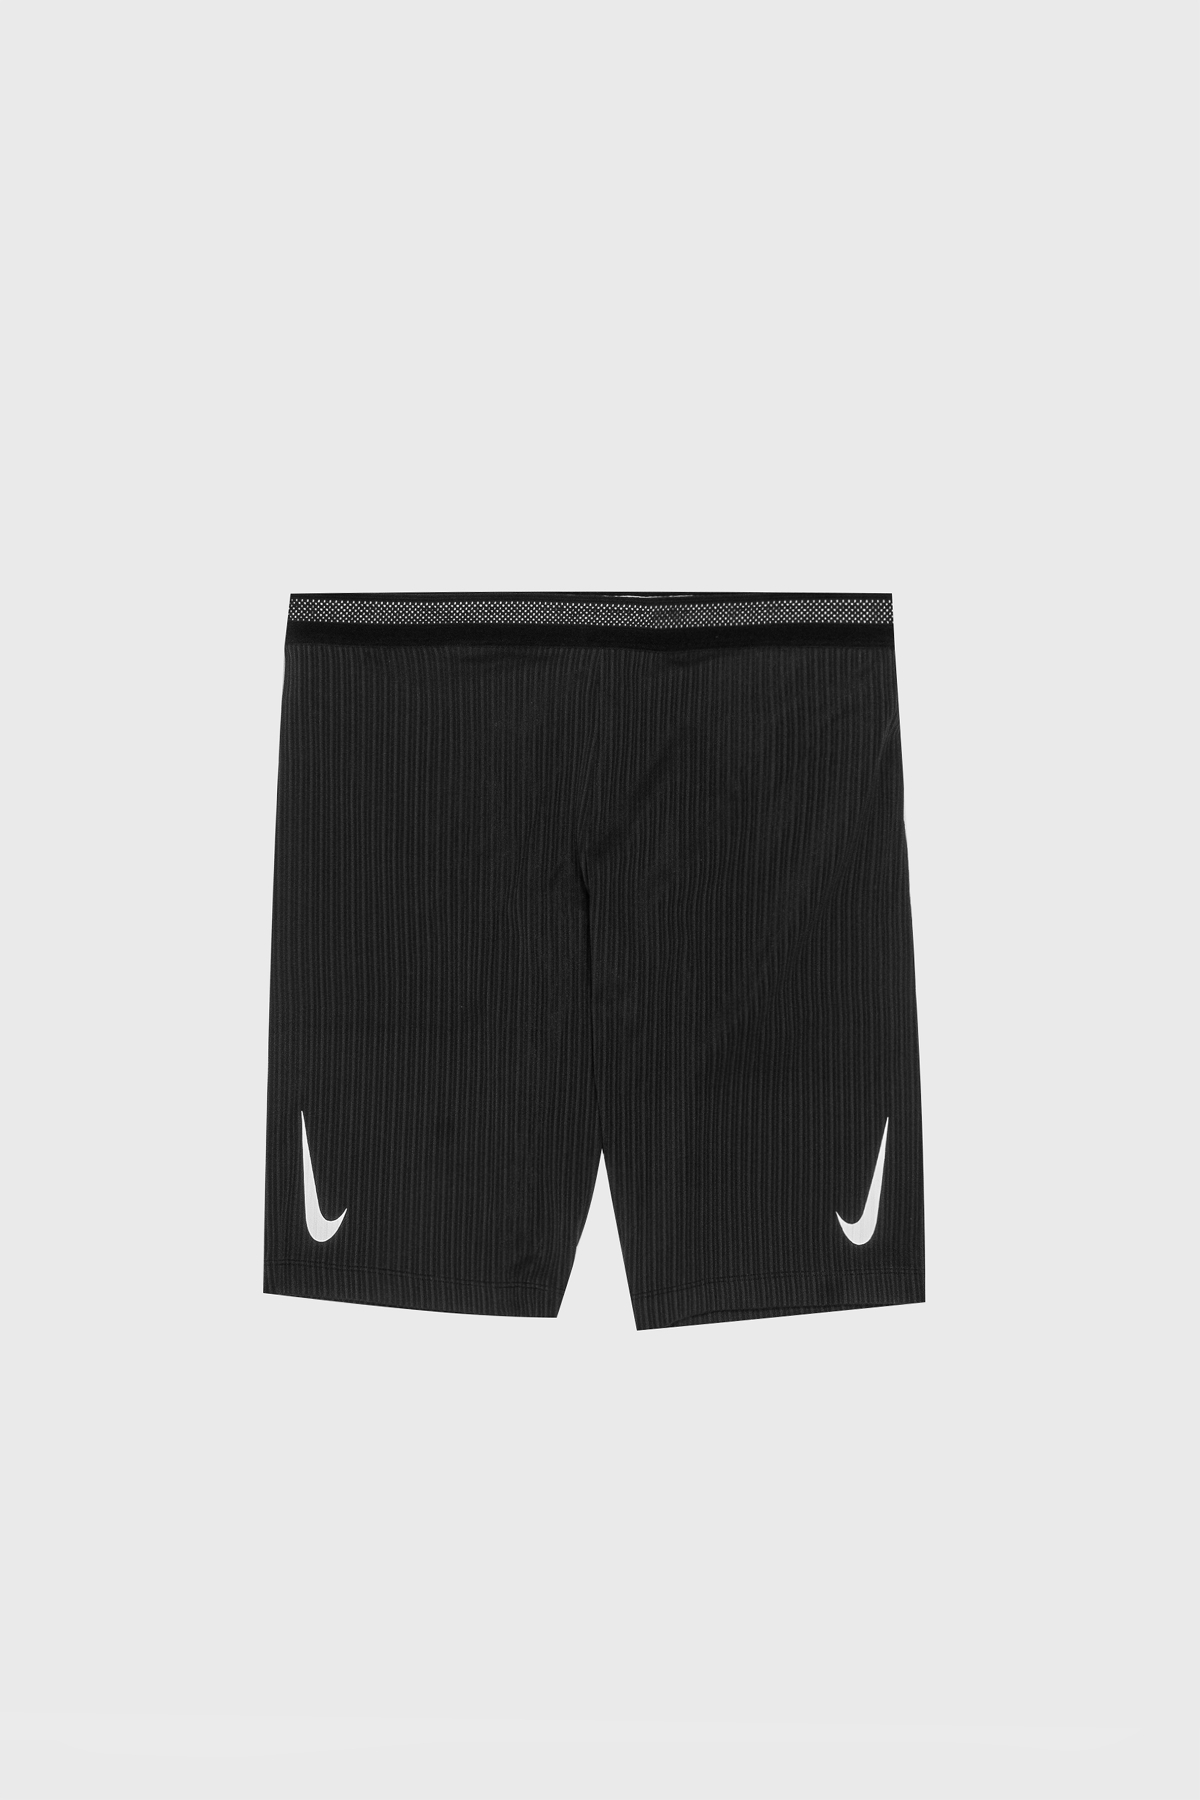 Nike - Aeroswift Half tight - black